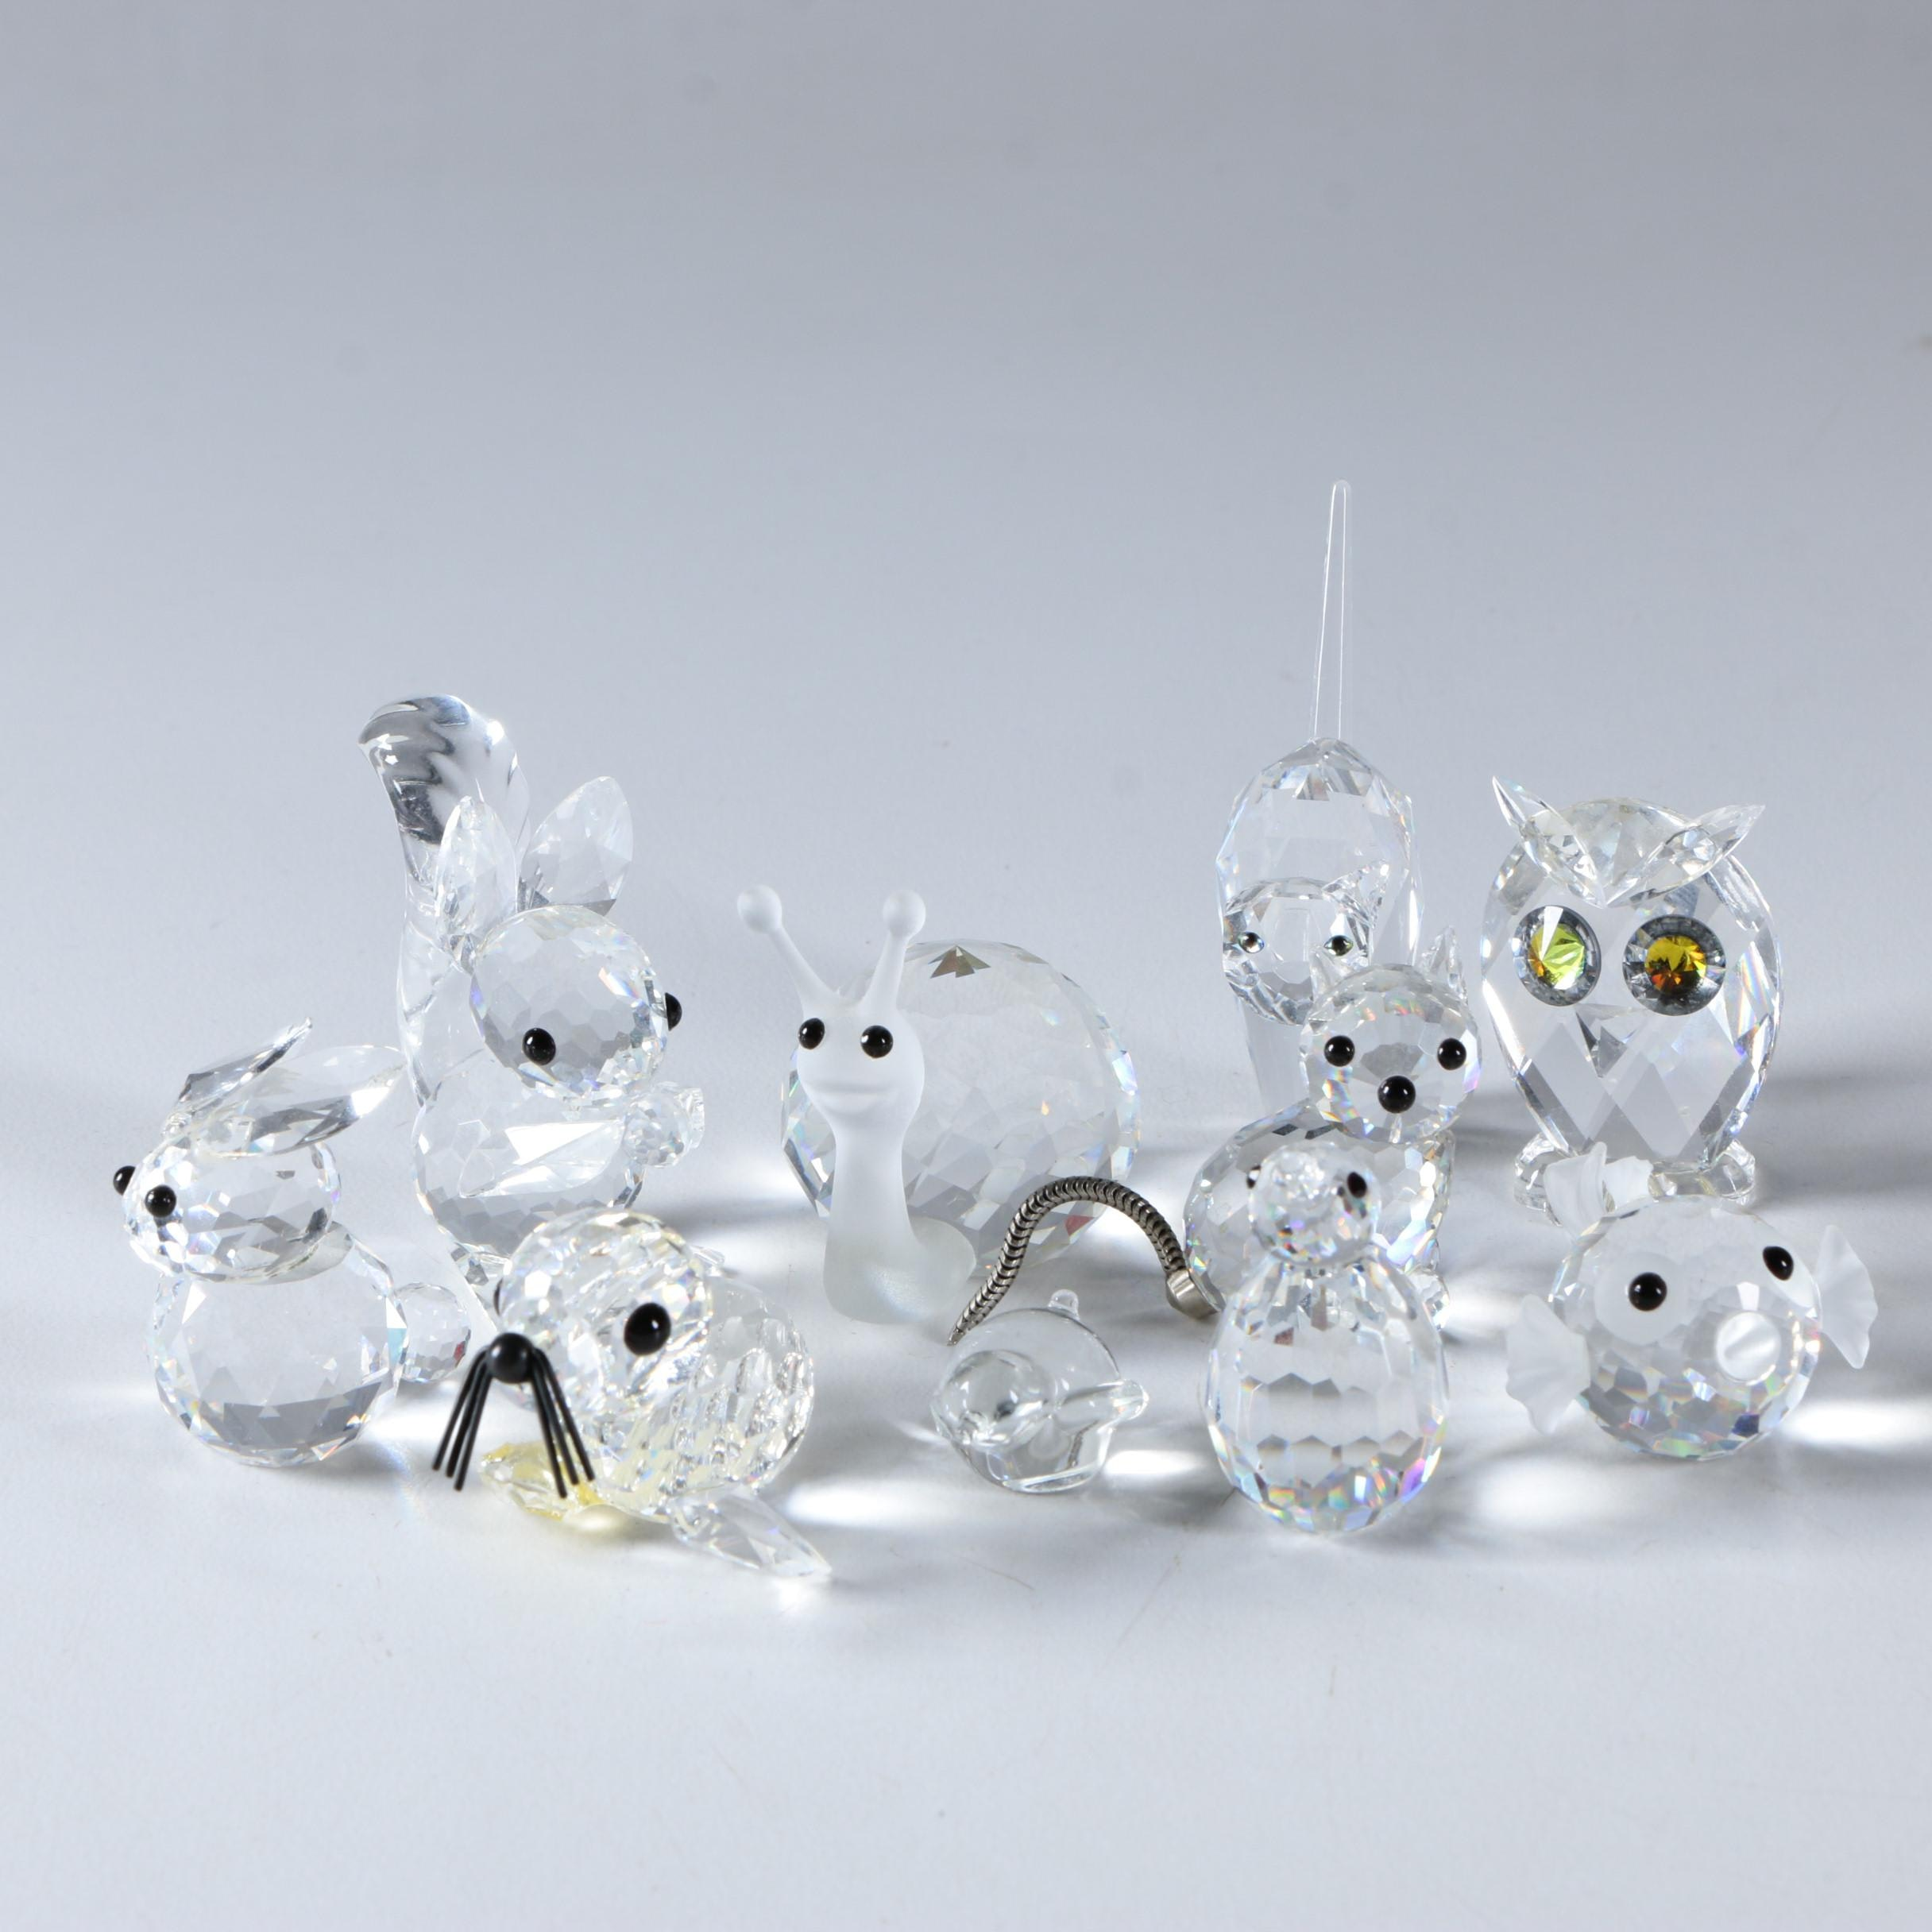 Crystal and Glass Faceted Animal Figurines